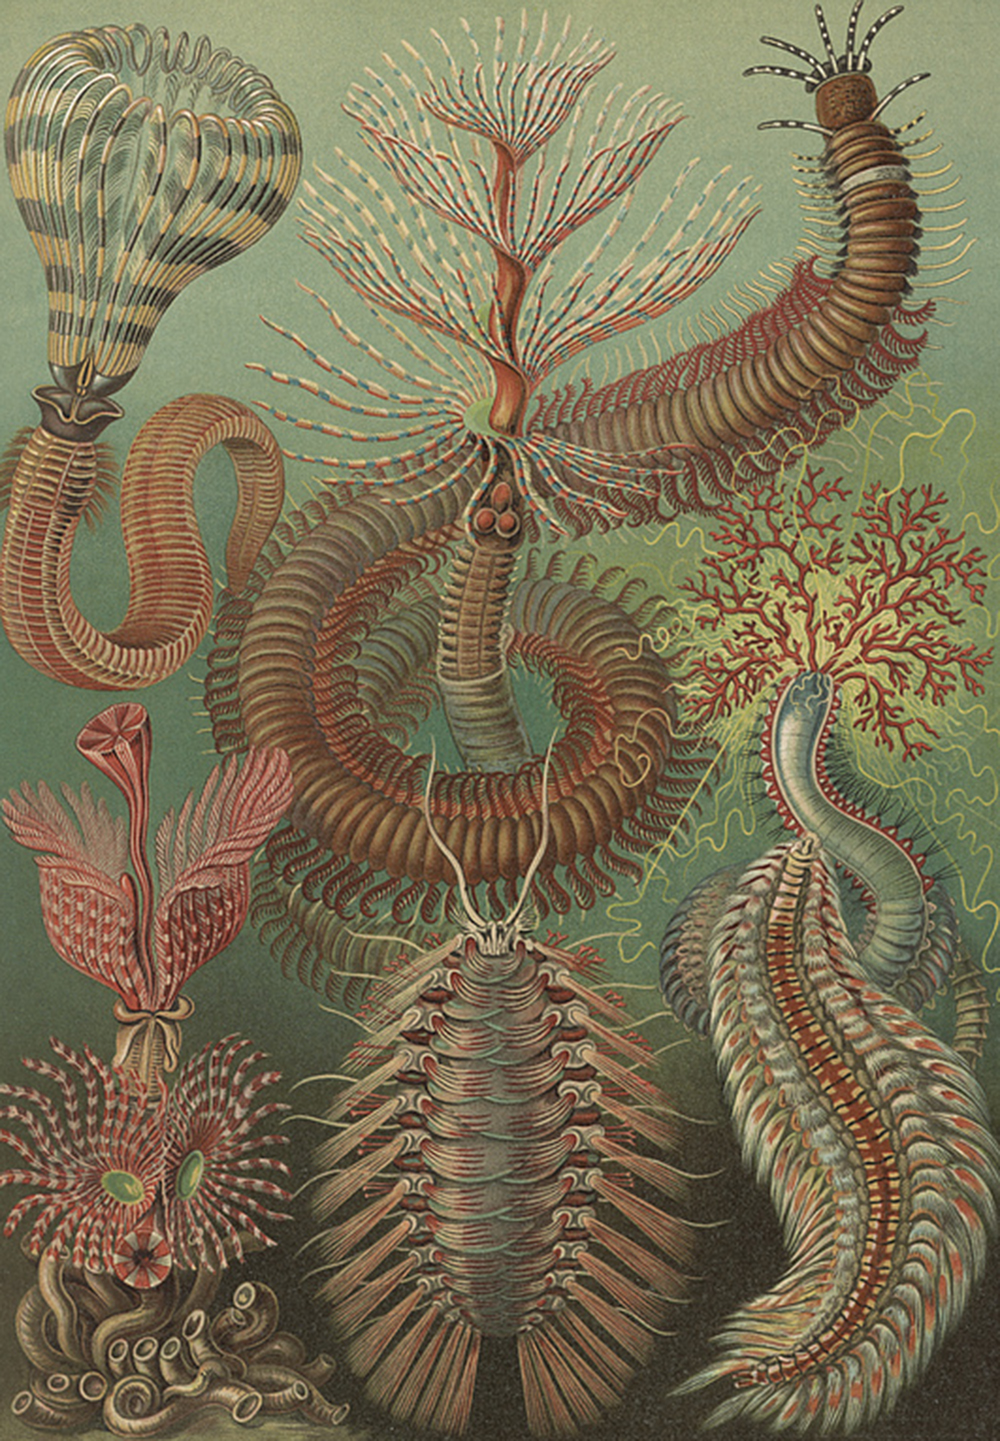 """Chaetopoda,"" by Adolf Giltsch after sketch by Ernst Haeckel, c. 1904. Library of Congress, Prints and Photographs Division."